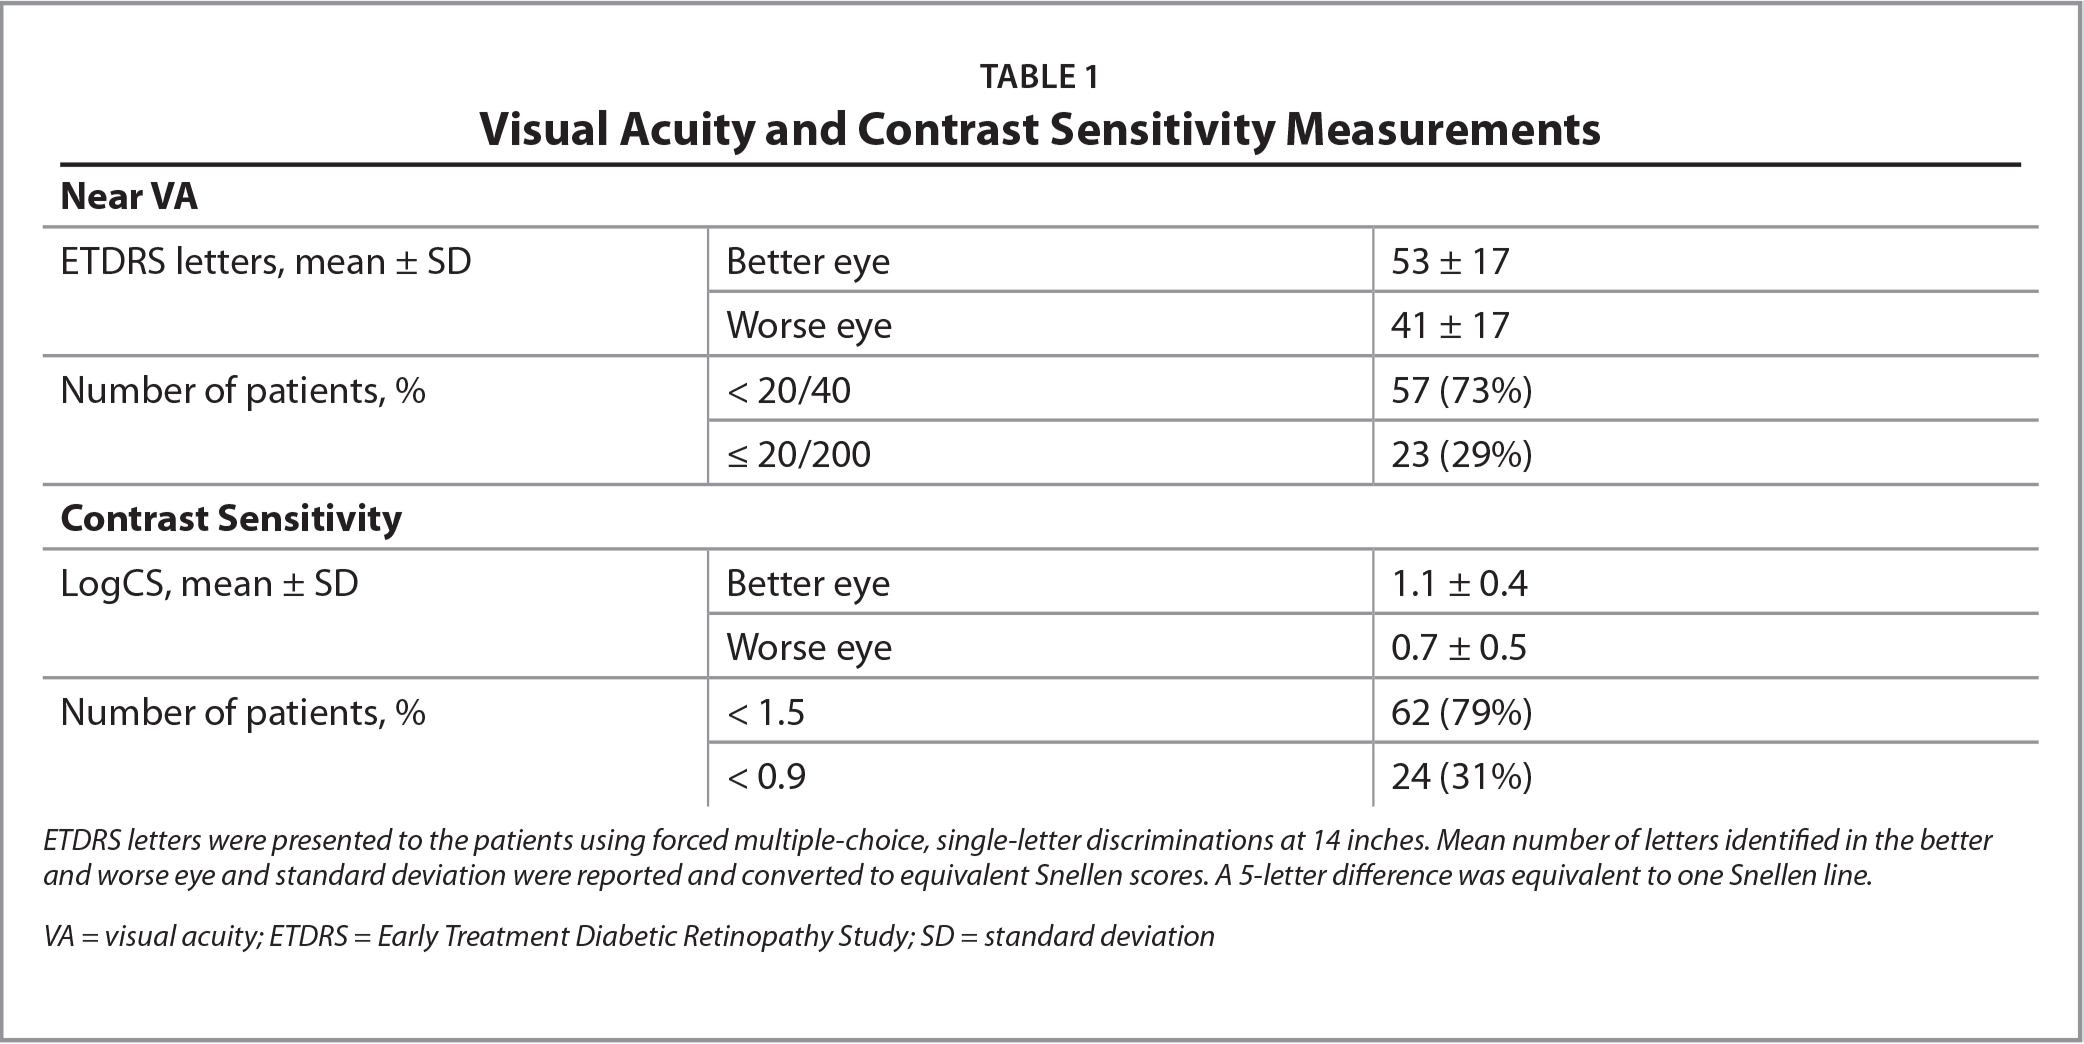 Visual Acuity and Contrast Sensitivity Measurements